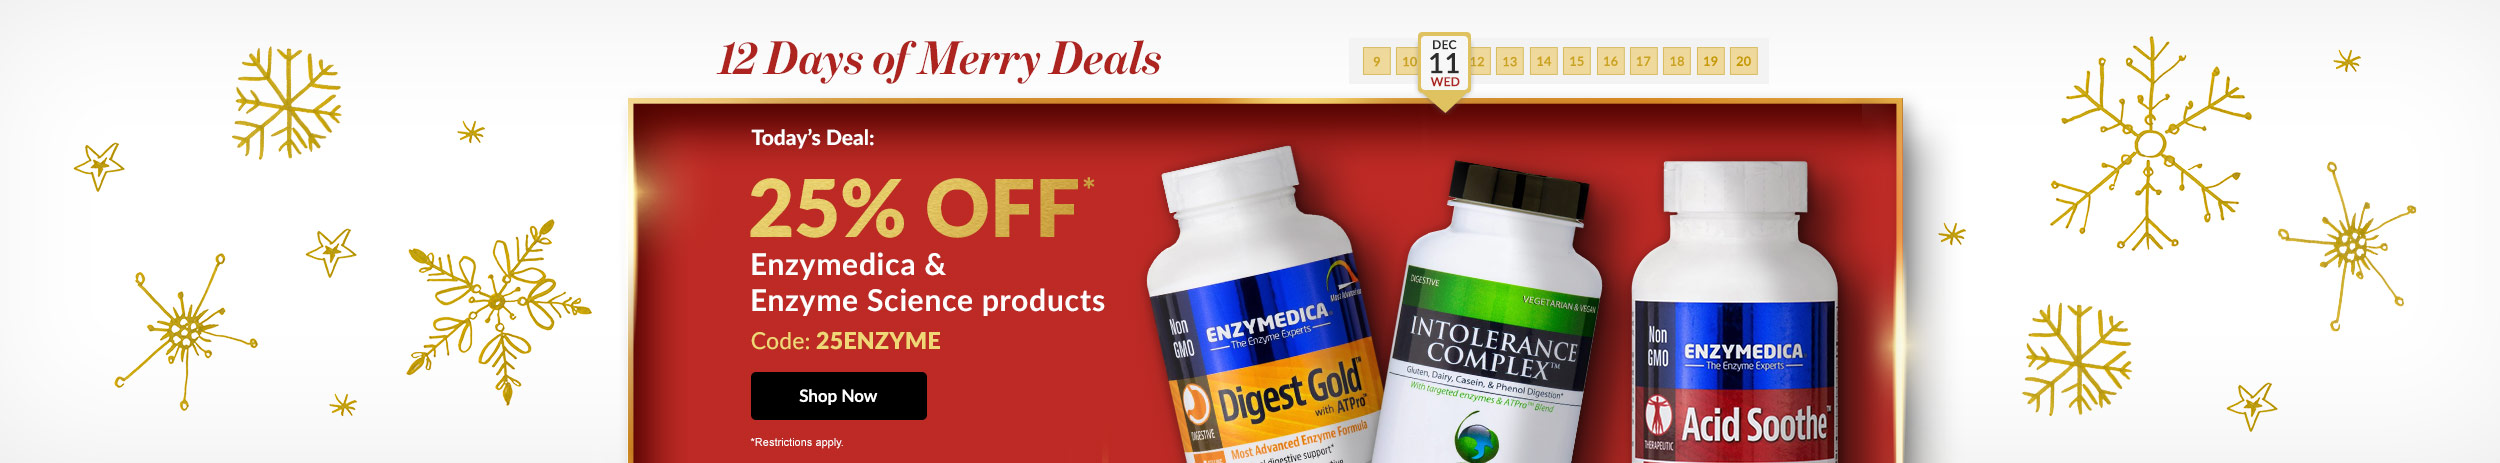 12 Days of Merry Deals: 25% OFF* all Enzymedica & Enzyme Science products - Code: 25ENZYME. *Exclusions apply.